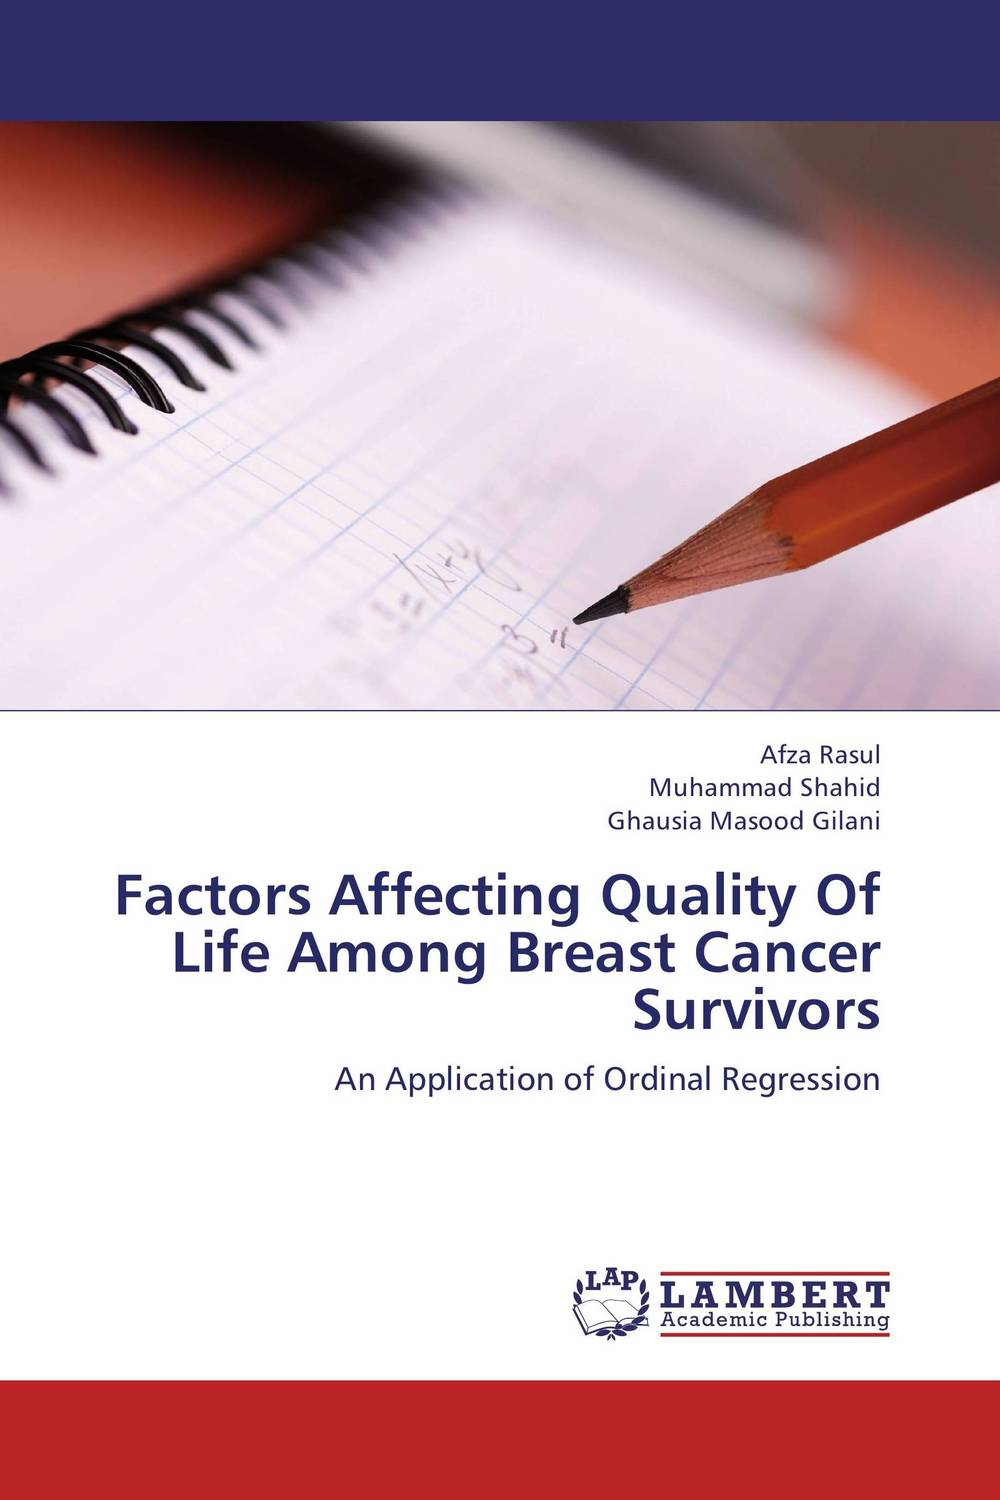 Factors Affecting Quality Of Life Among Breast Cancer Survivors breast cancer self exam device with the physical method and high accuracy